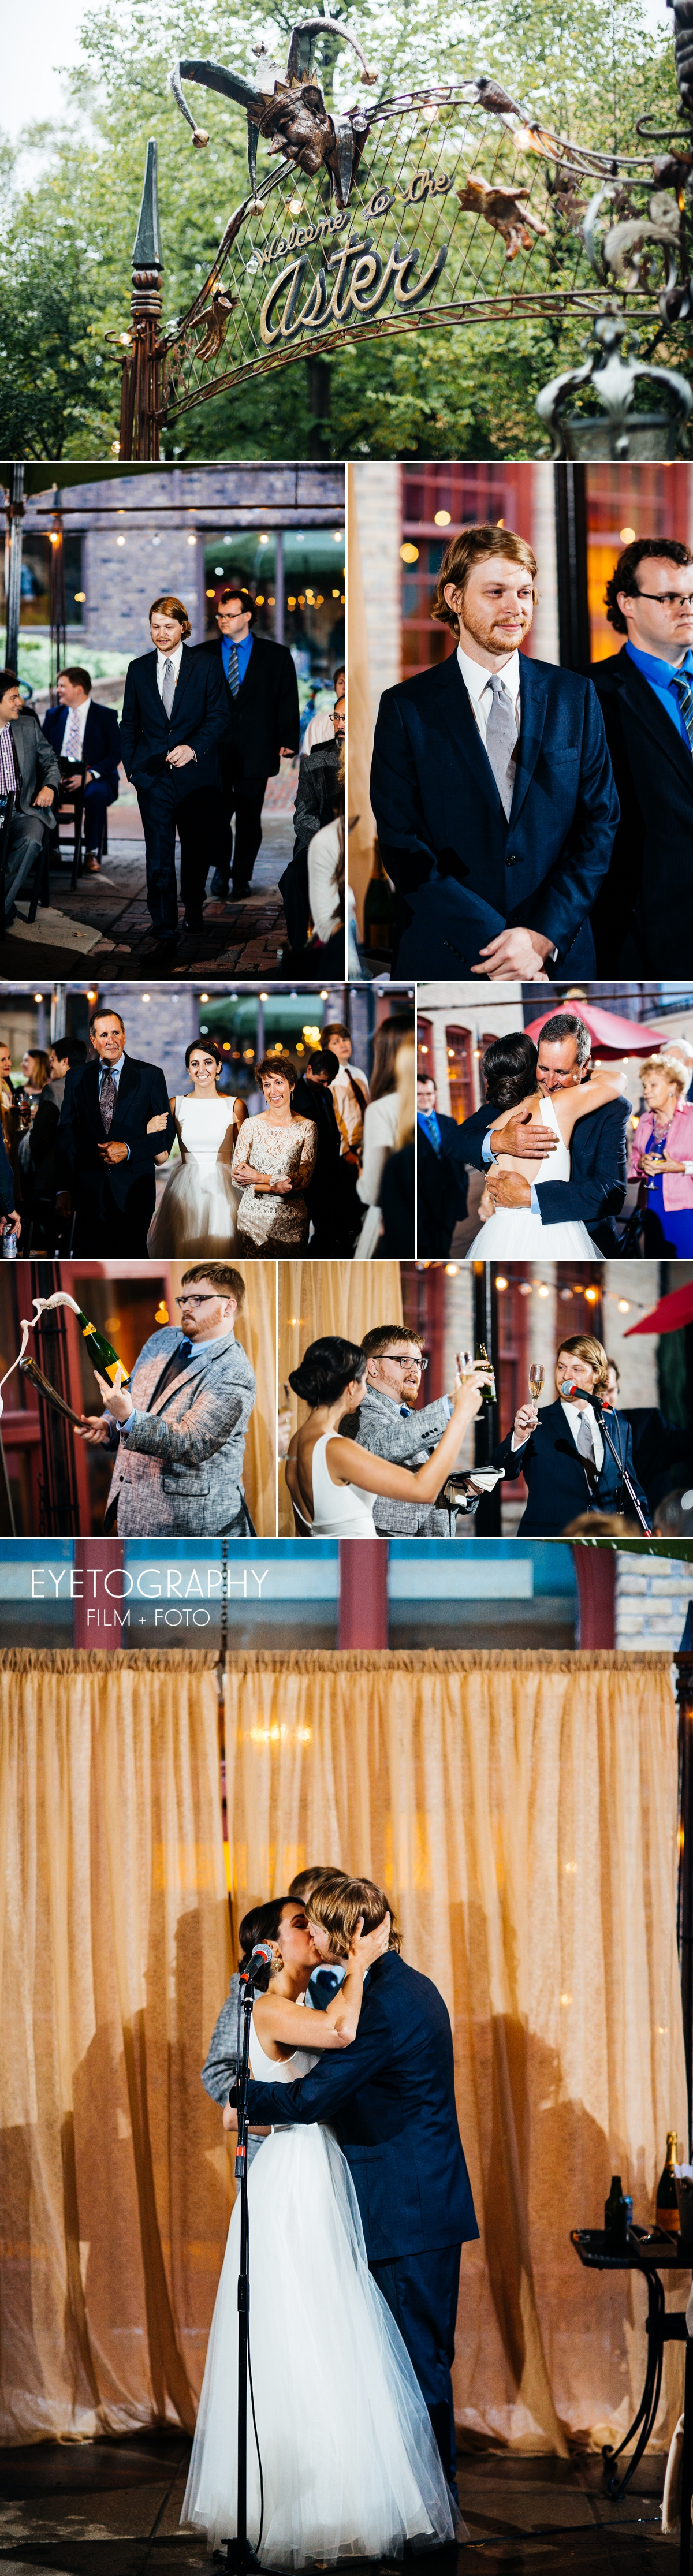 Aster Cafe Wedding - Eyetography Film + Foto | Katharine + Blake 8